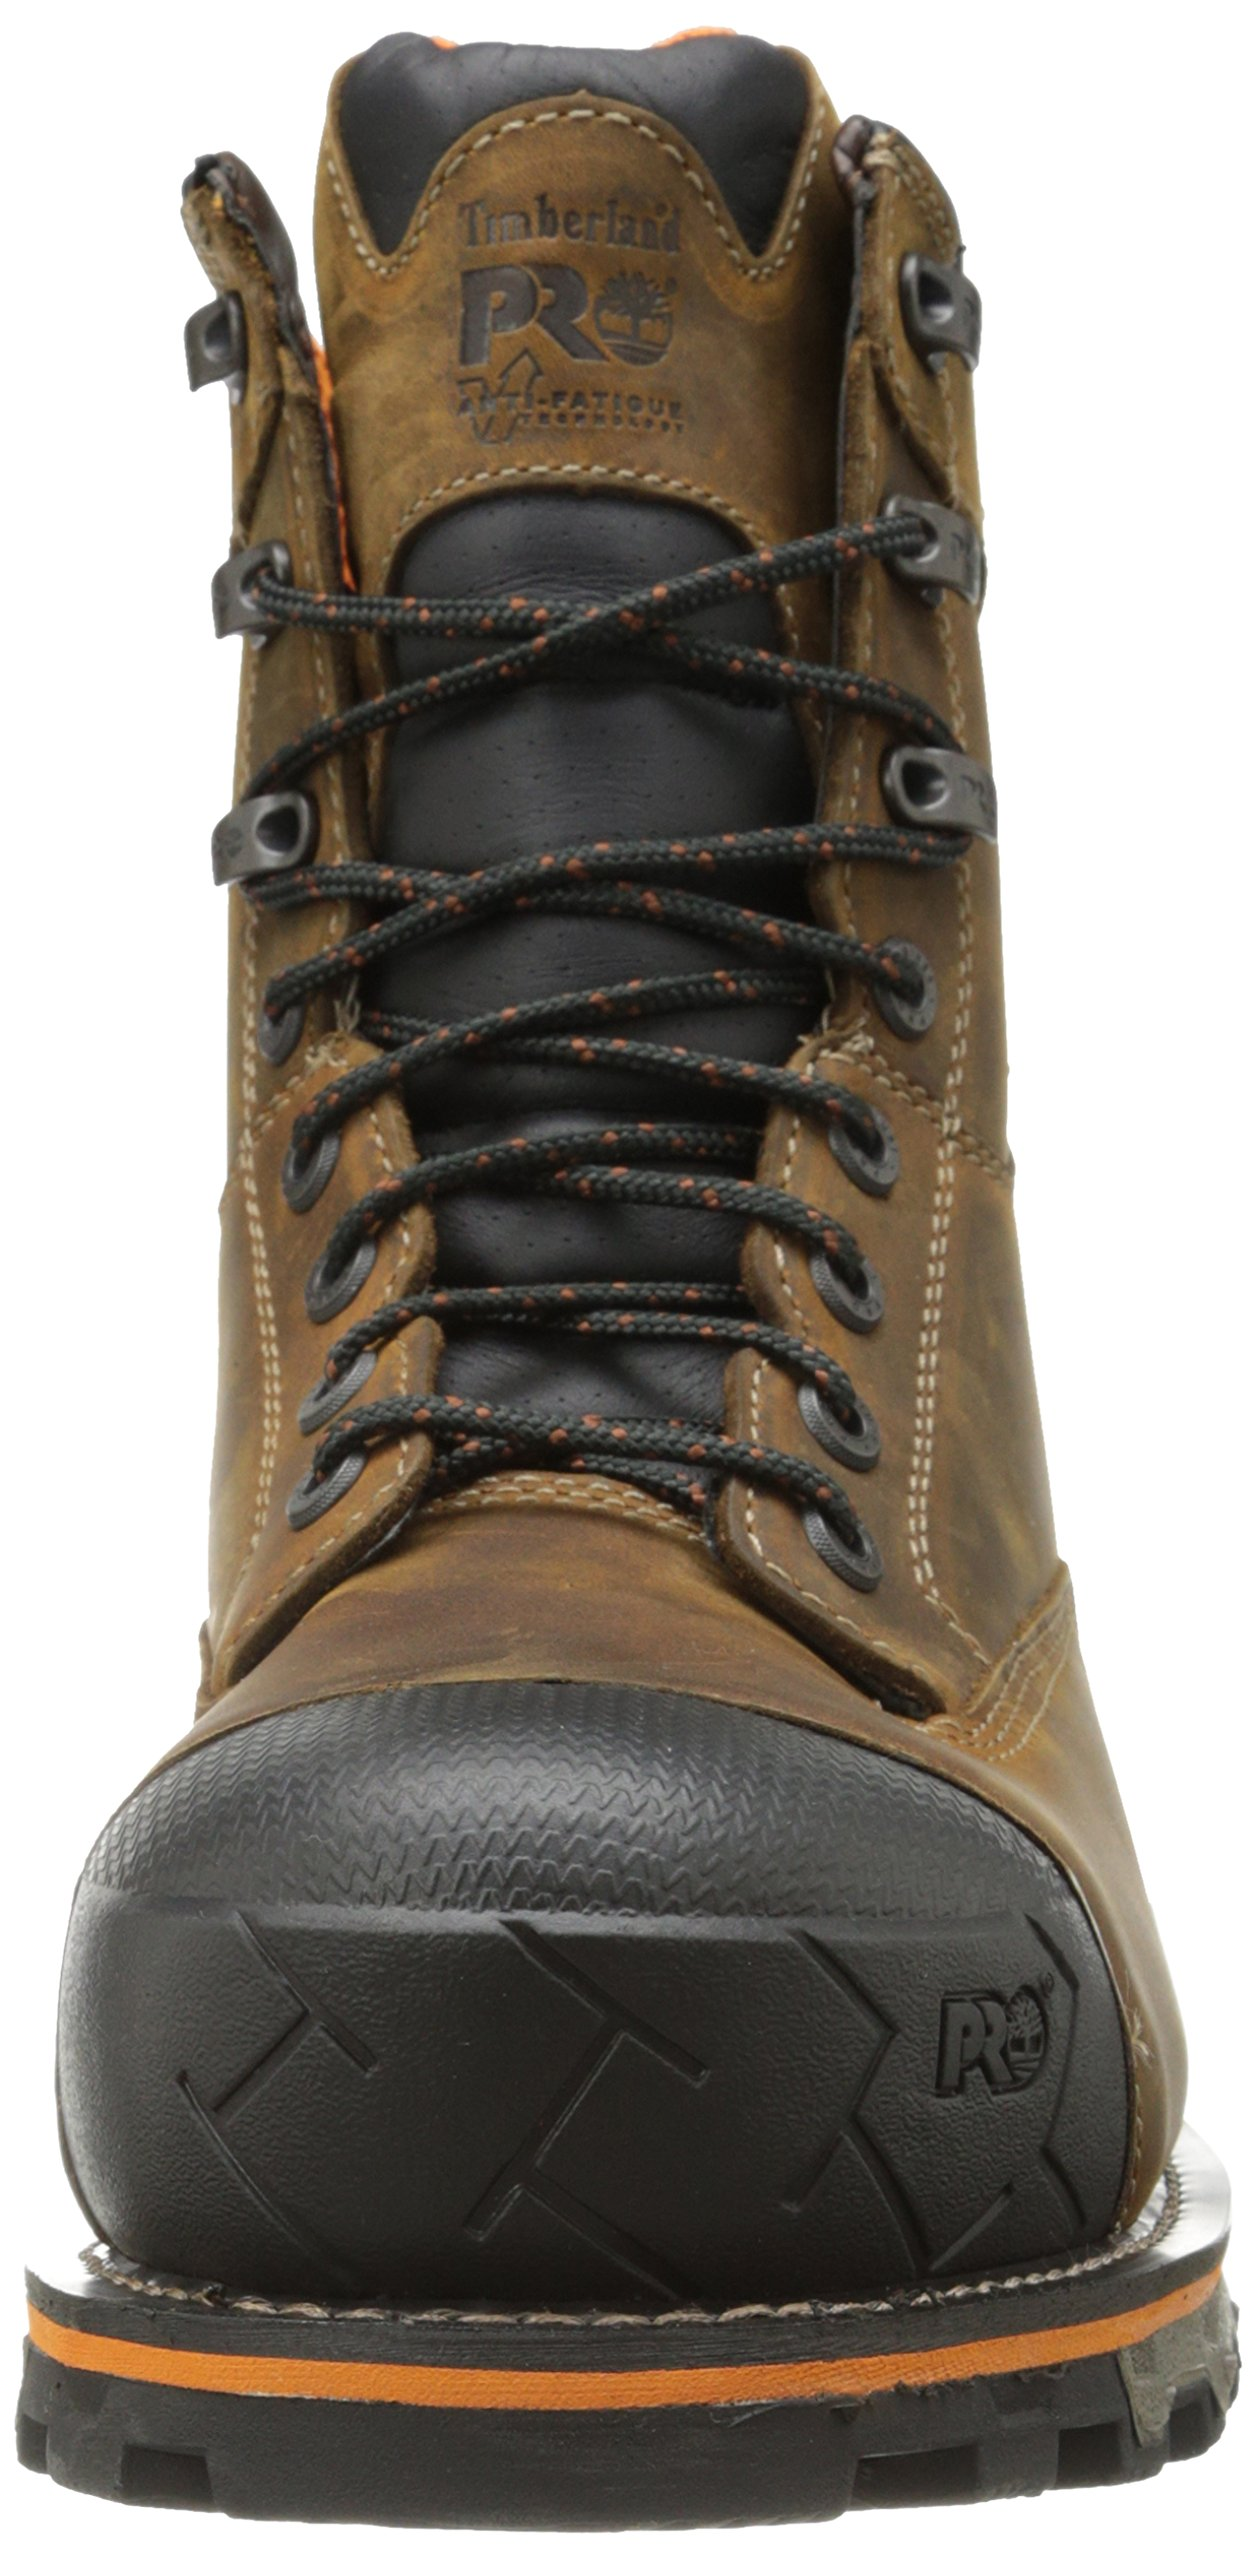 Timberland PRO Men's 8 Inch Boondock Composite Toe Waterproof Industrial Work Boot,Brown Oiled Distressed Leather,7.5 W US by Timberland PRO (Image #4)